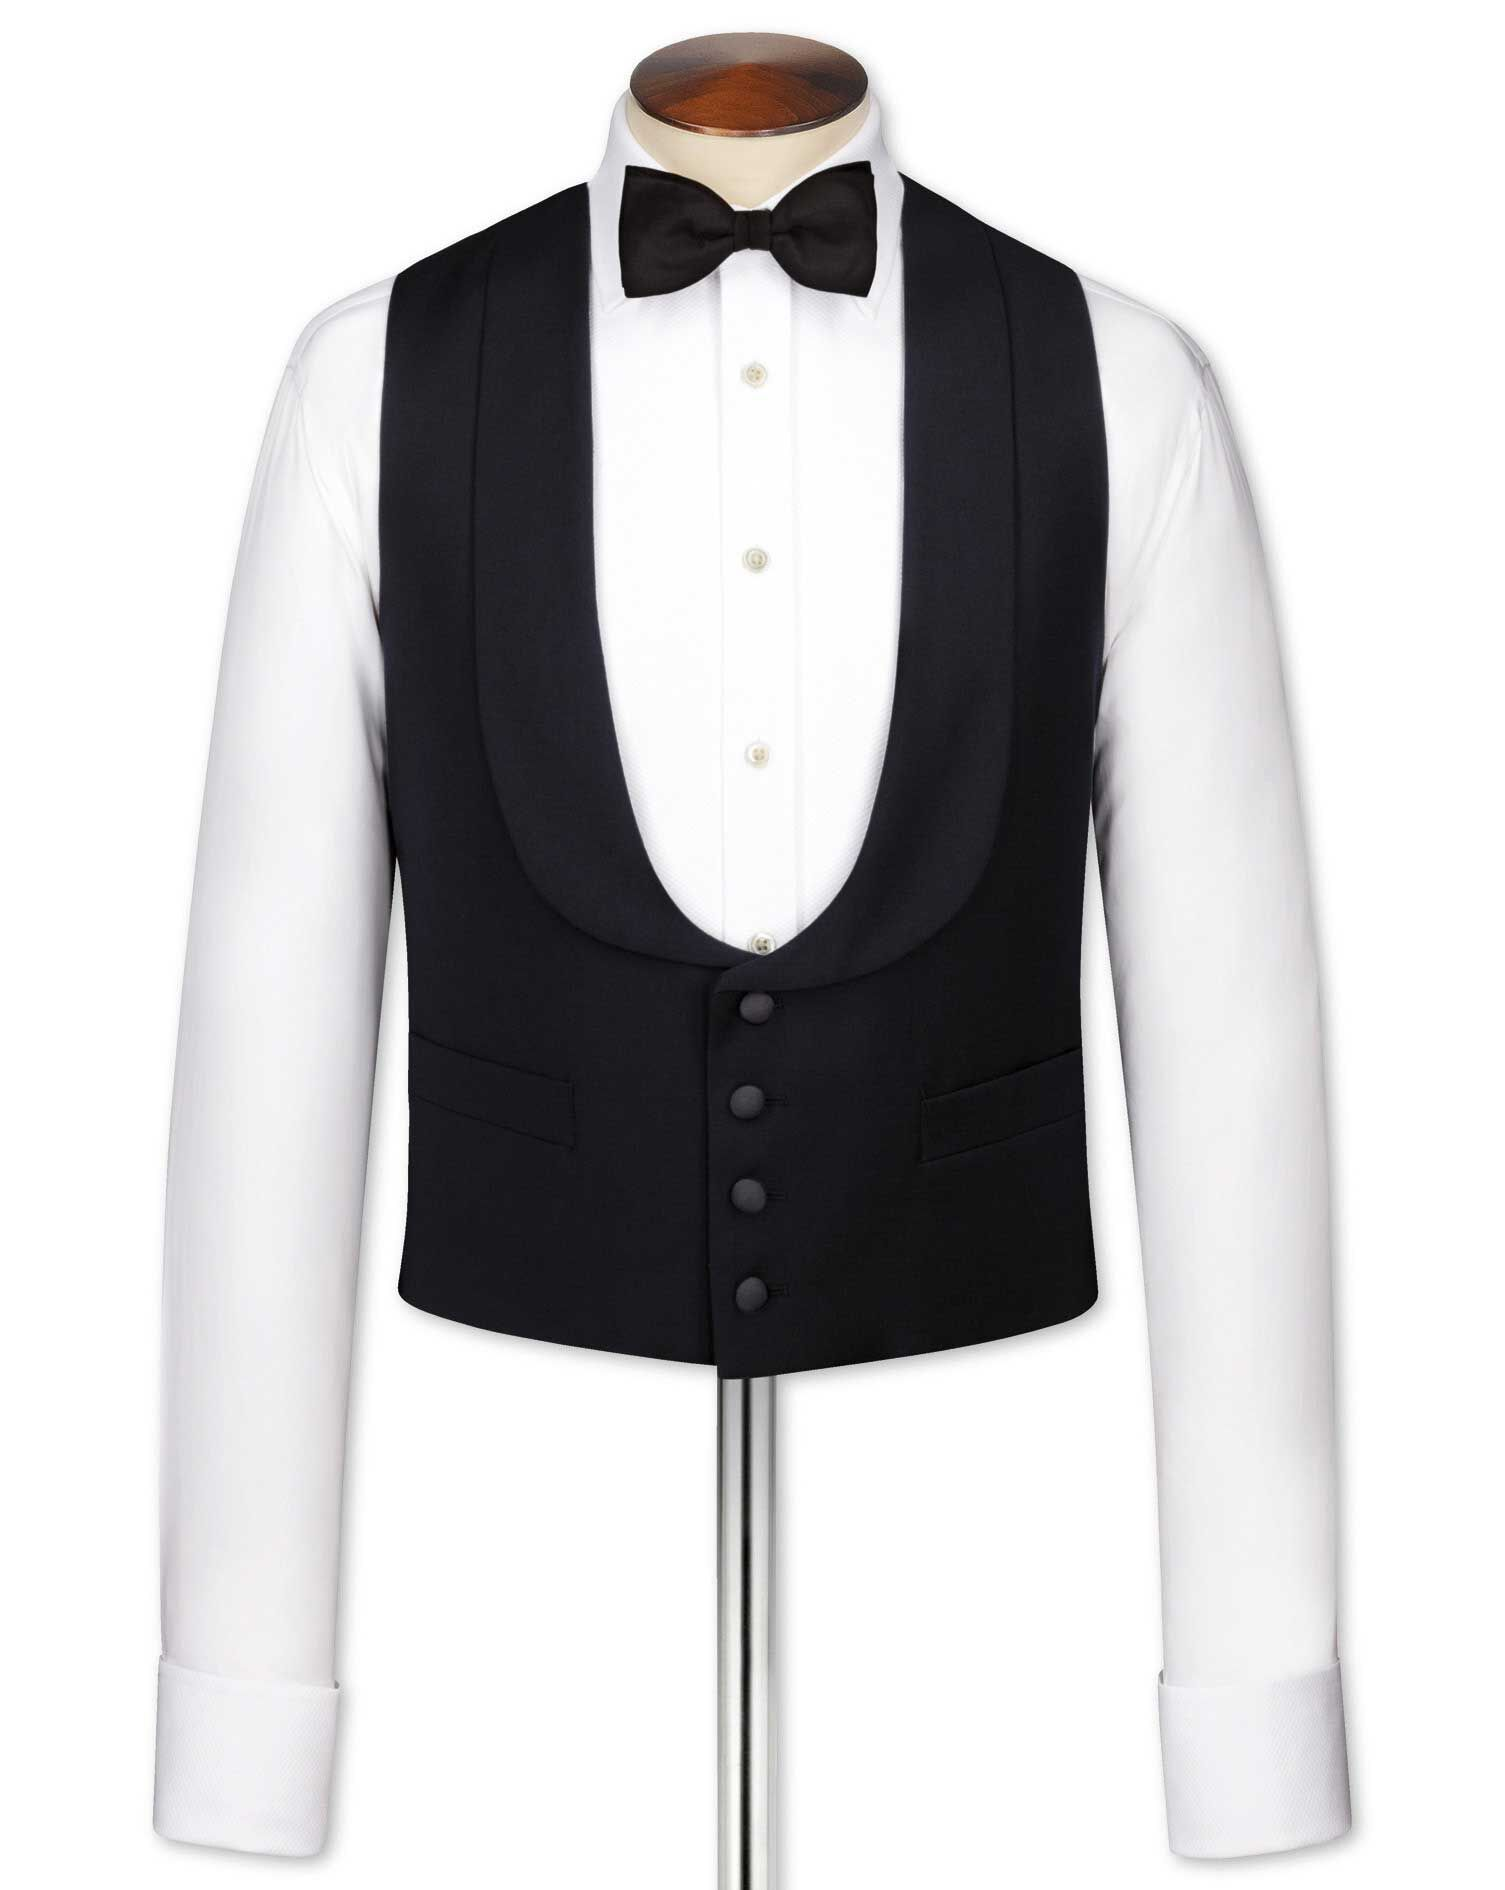 Victorian Men's Formal Wear, Wedding Tuxedo Charles Tyrwhitt Black tuxedo waistcoat £70.00 AT vintagedancer.com